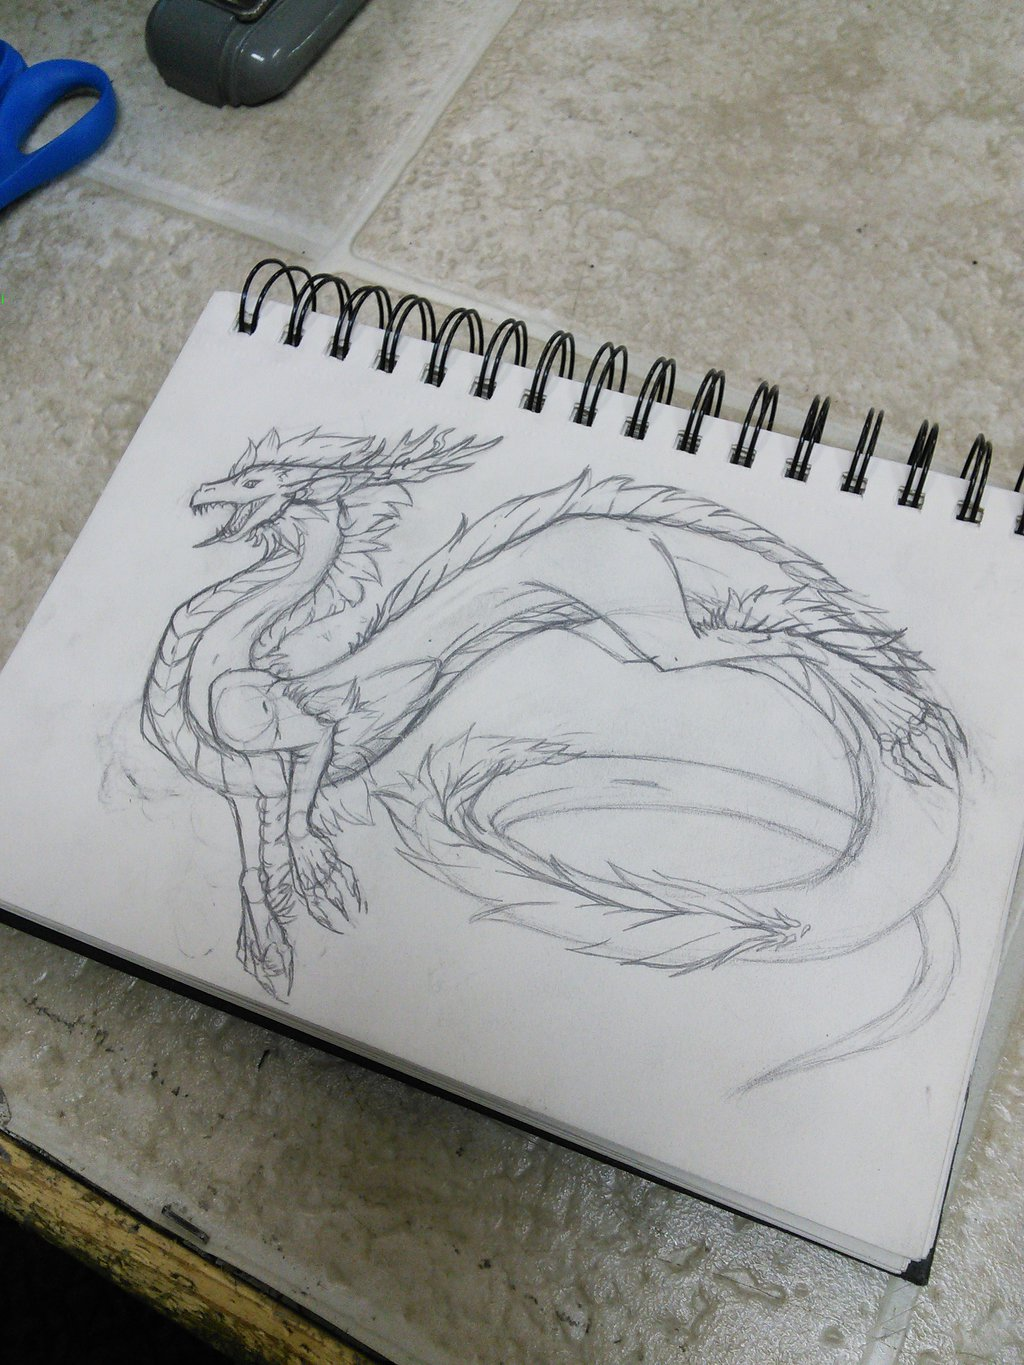 Most recent image: Nameless Dragon